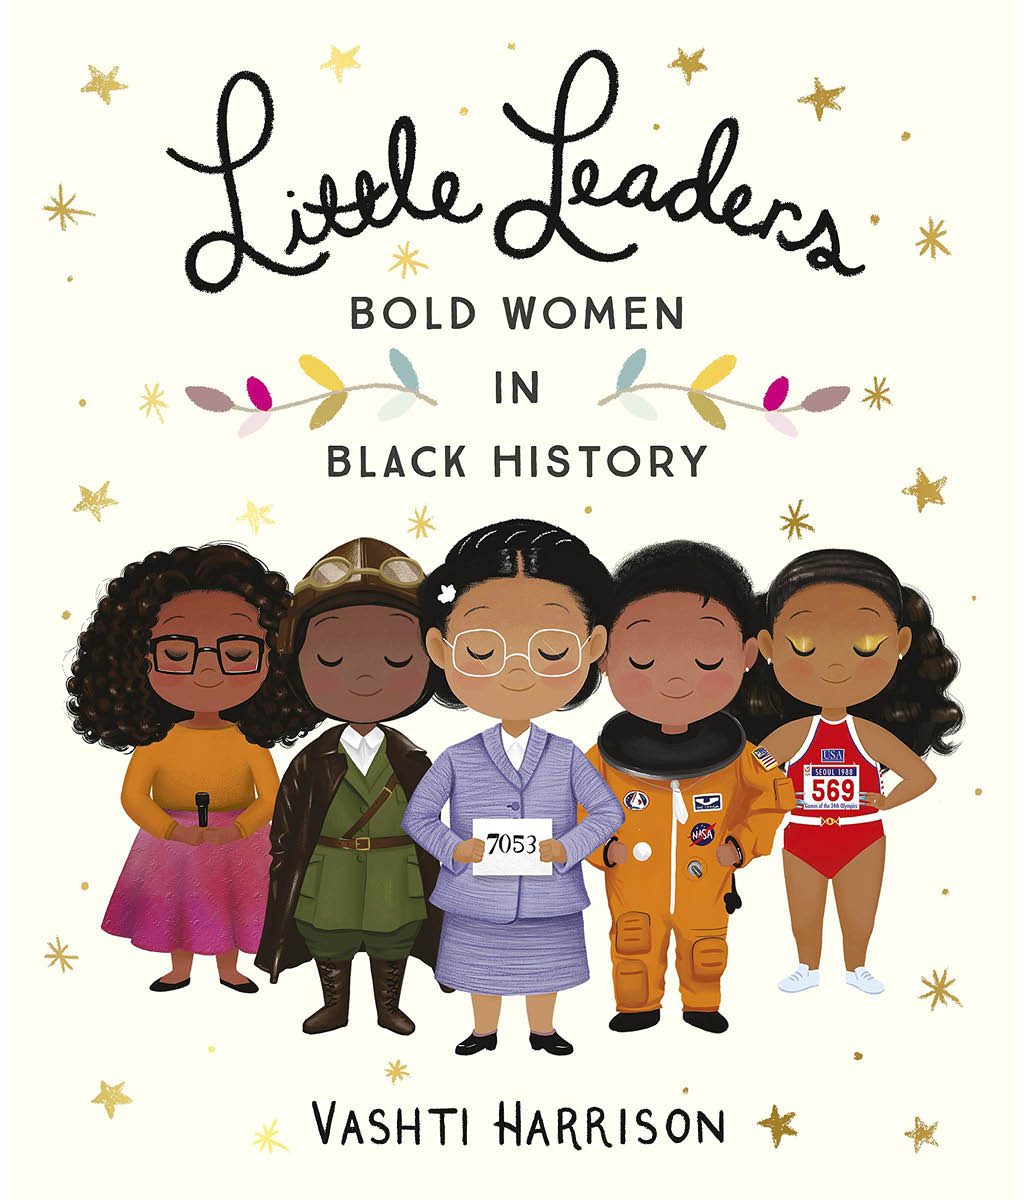 Little Leaders: Bold Women in Black History Vashti Harrison